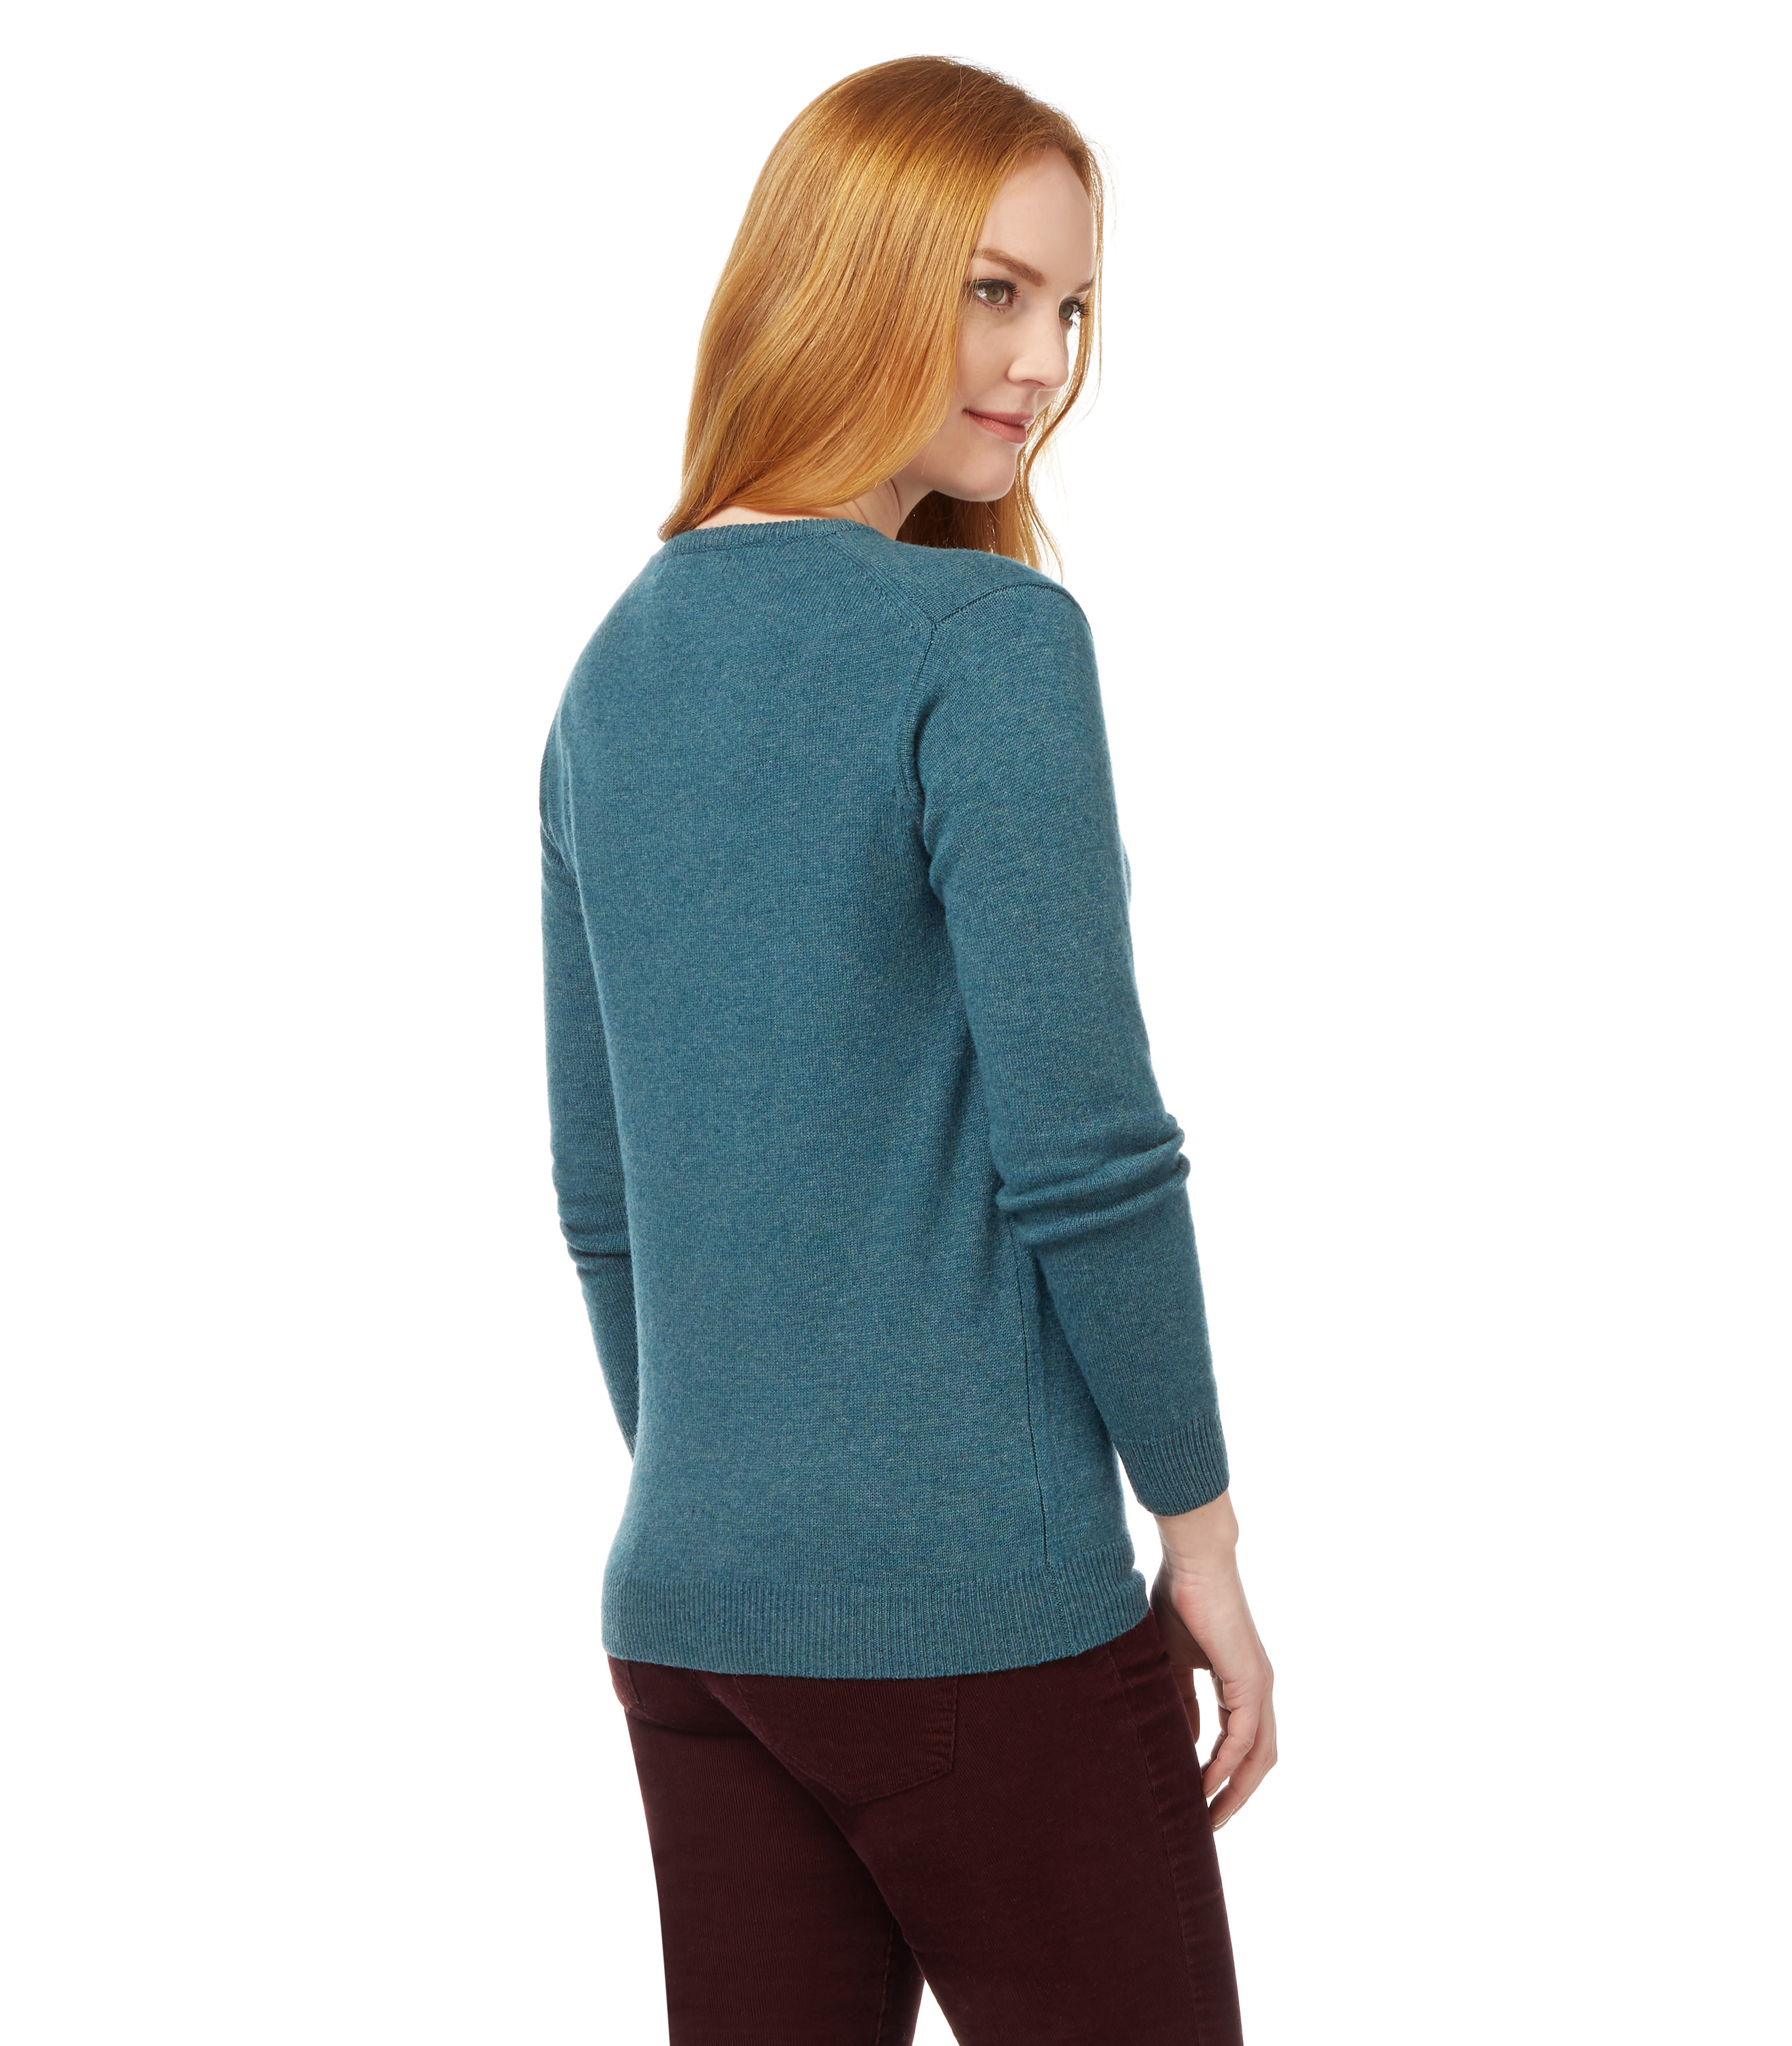 Womens Sweaters. Cozy up to the comfiest of women's clothing—sweaters! With so many shades and styles to choose from, it's easy to fill your winter wardrobe. From the warm wools to luxurious cashmere, shop the selection of women's sweaters. Don't forget to .